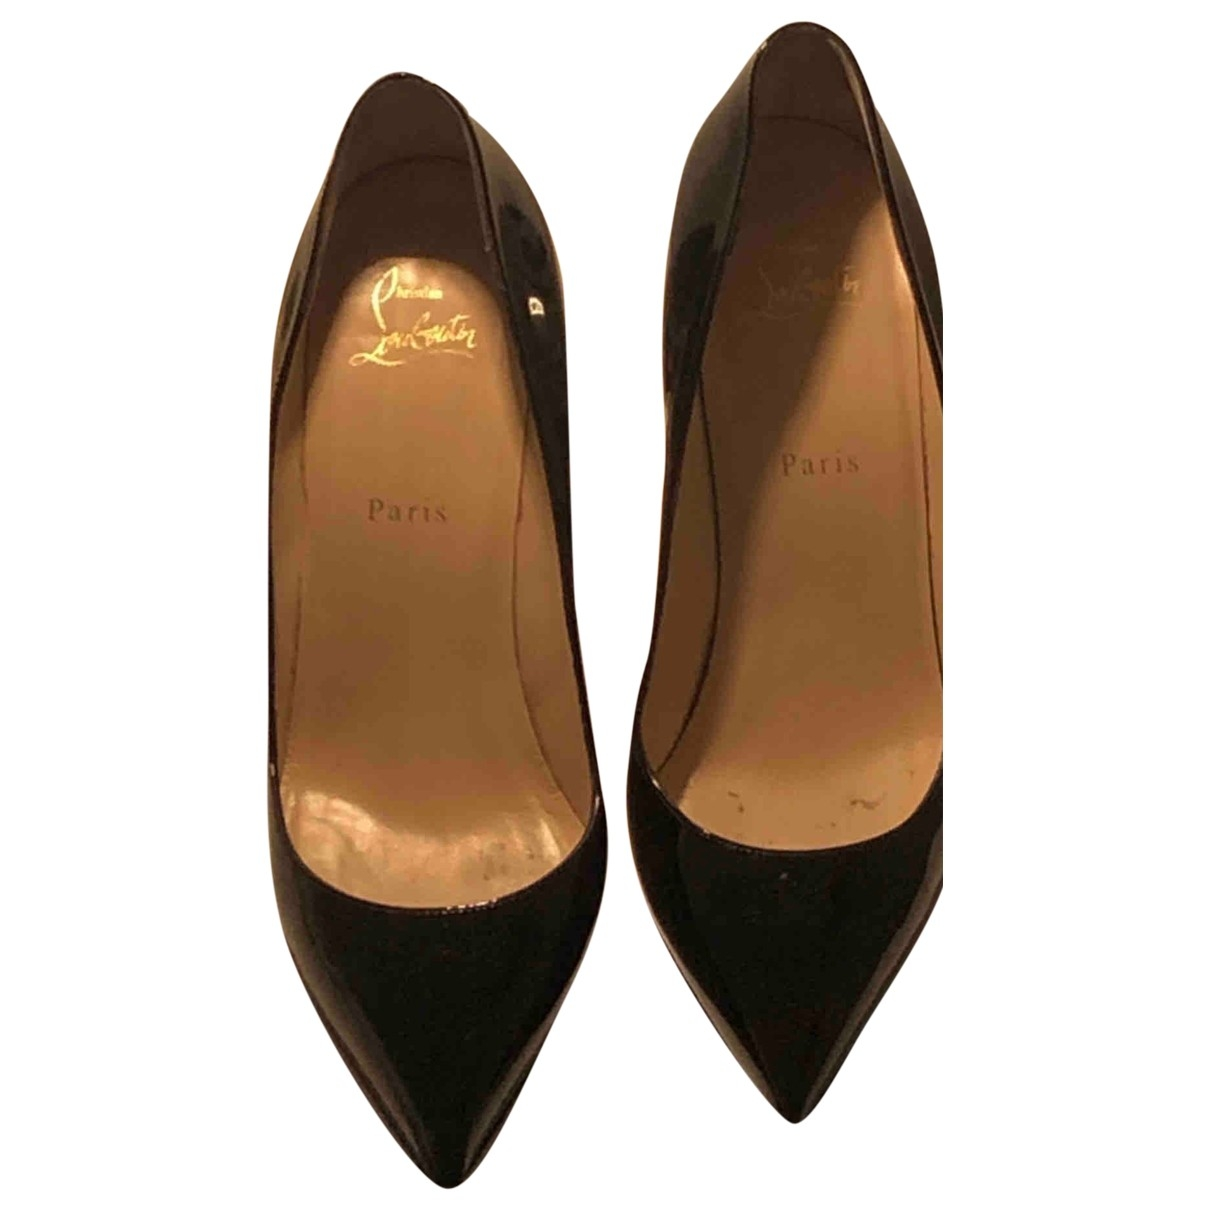 Christian Louboutin Pigalle Black Patent leather Heels for Women 40 EU